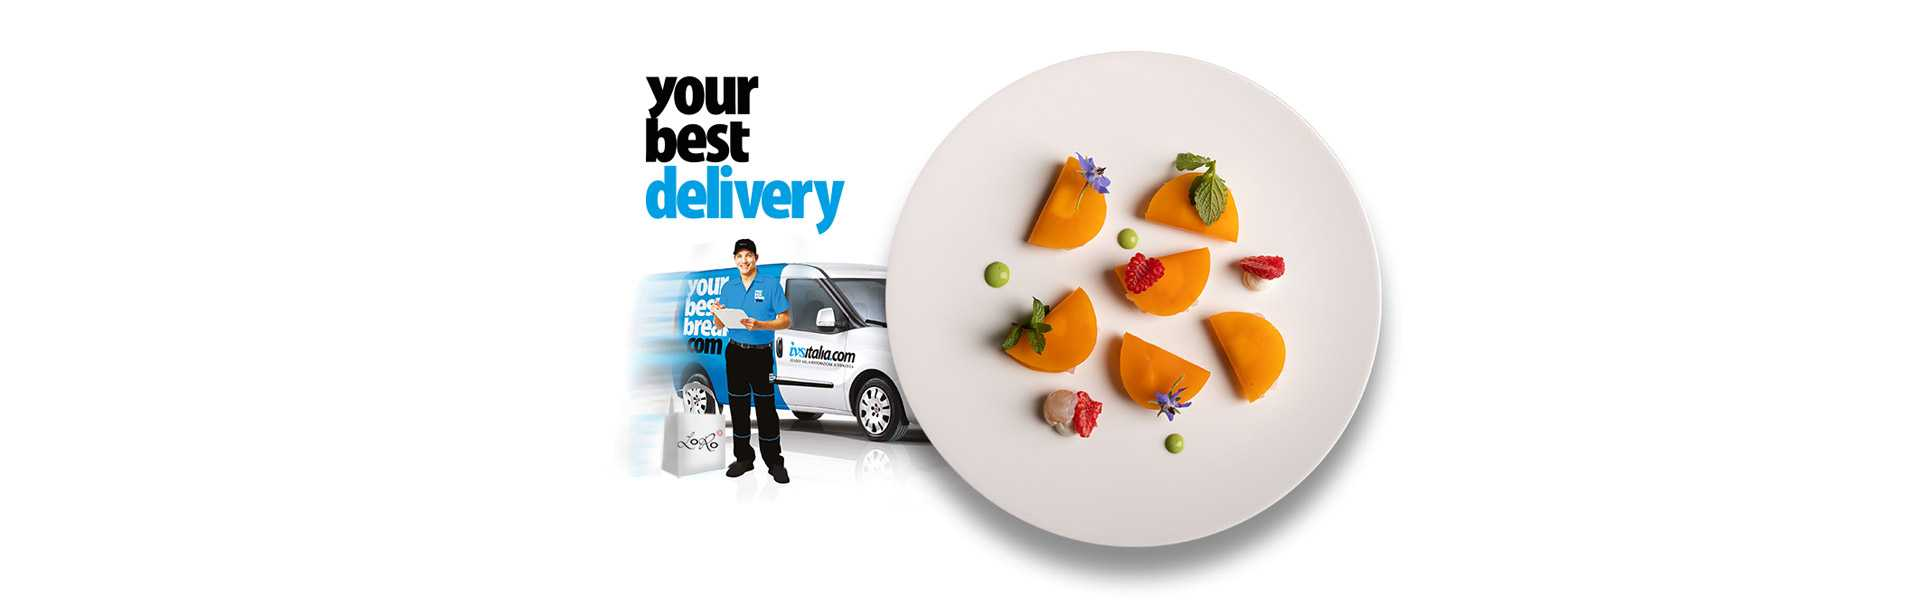 yourbestdelivery.com